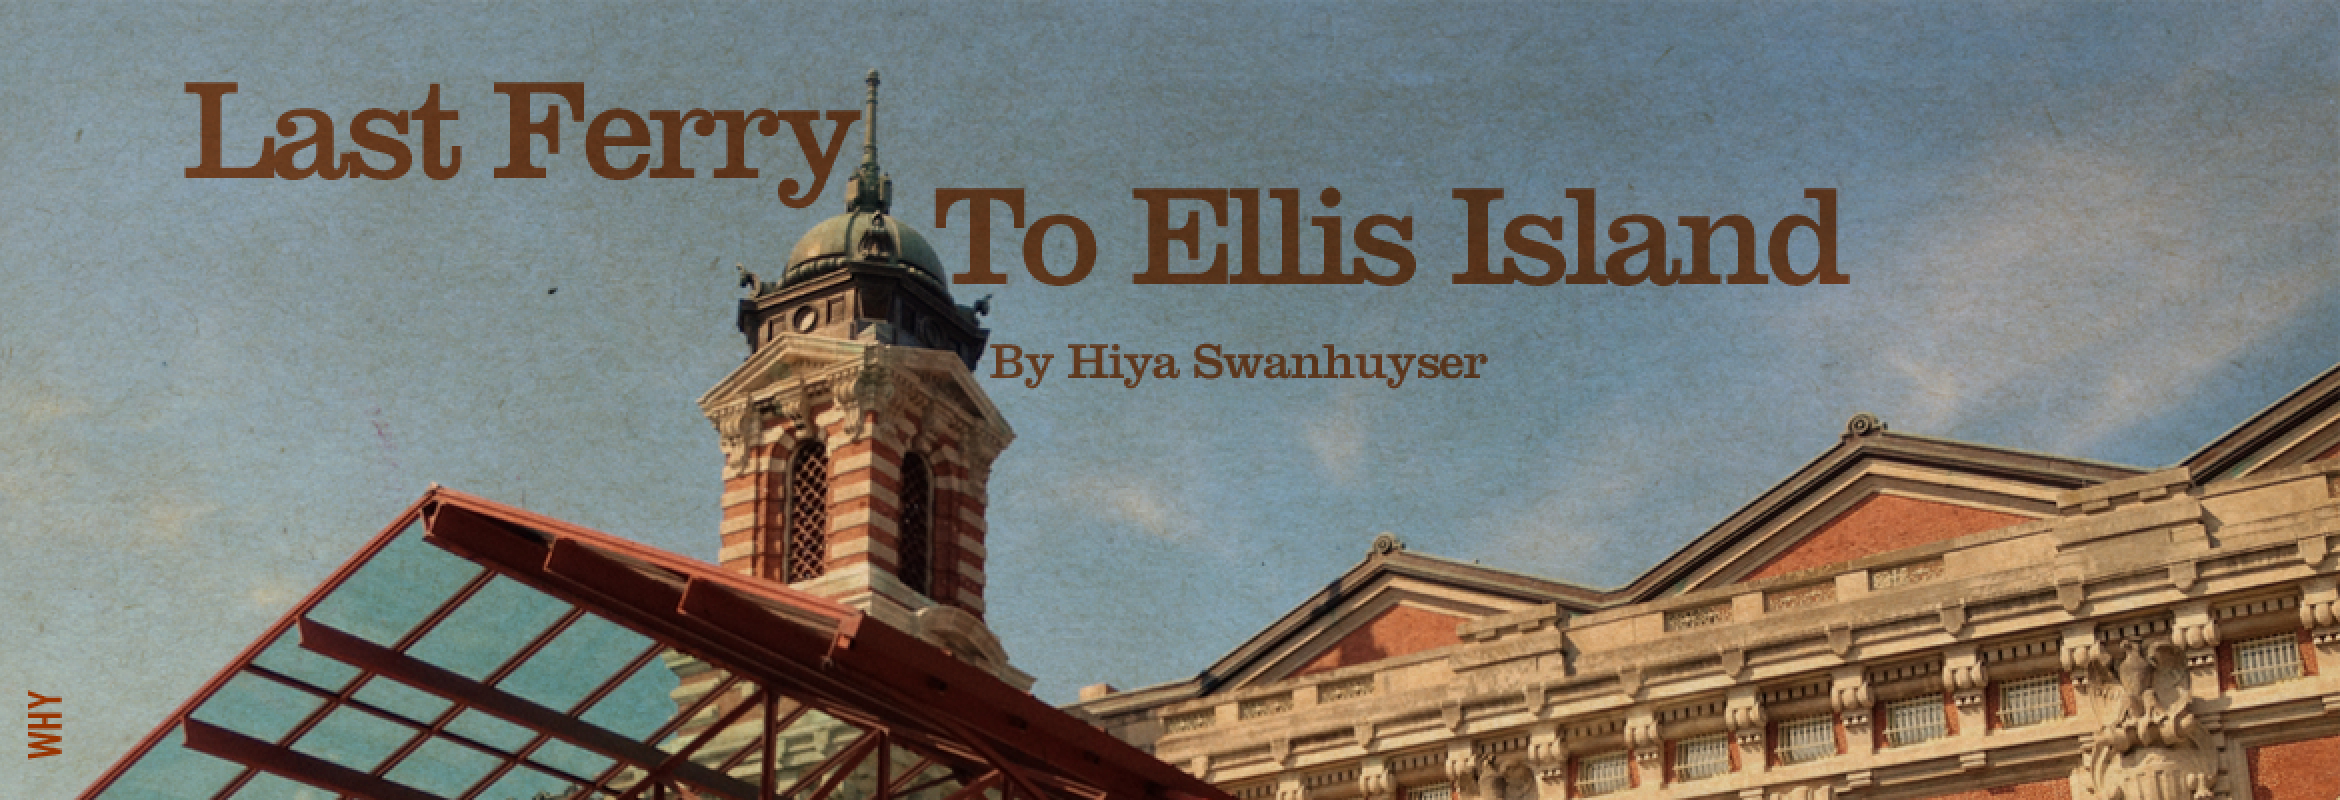 last-ferry-to-ellis-island-by-hiya-swanhuyser@2x.jpg